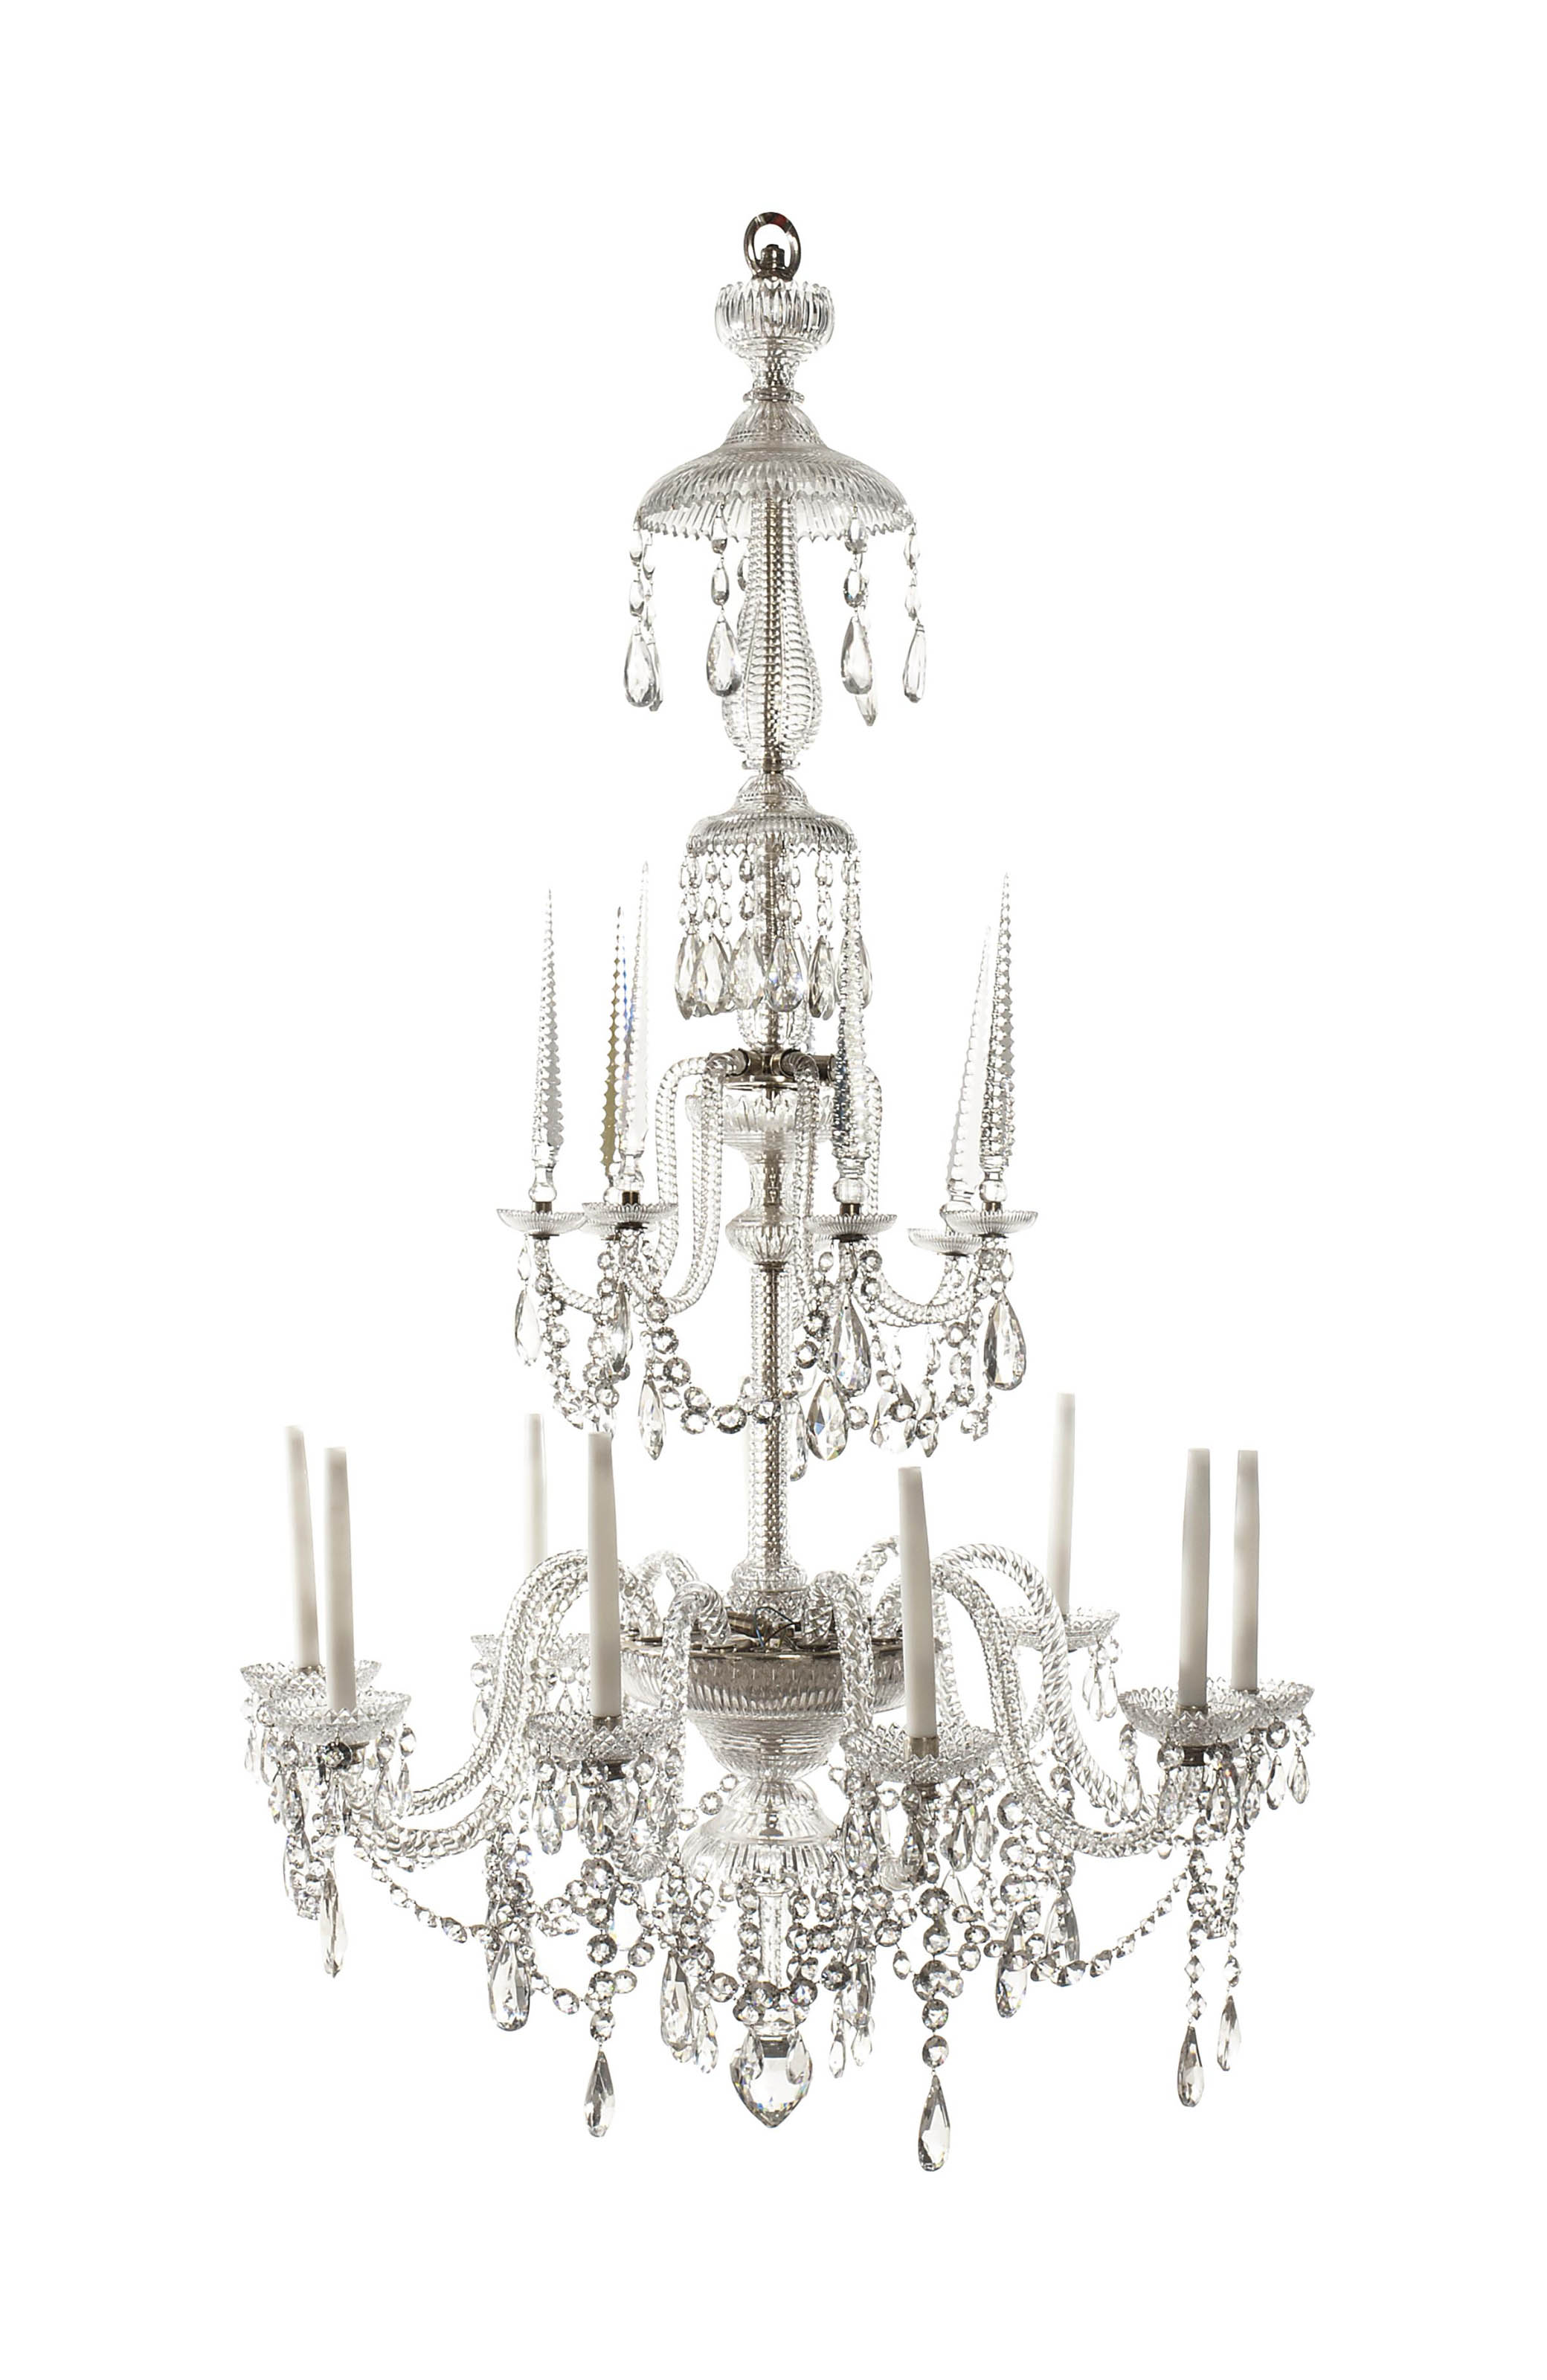 A LATE VICTORIAN CUT-GLASS NINE-LIGHT CHANDELIER